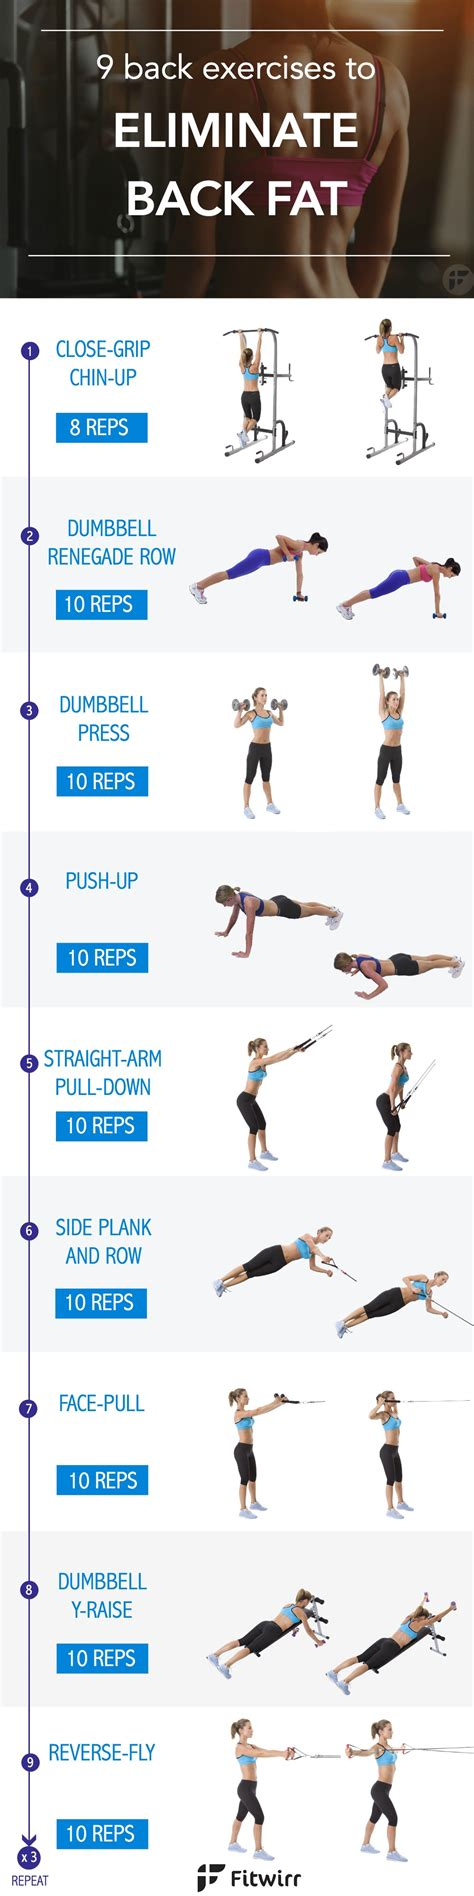 back exercises 187 health and fitness